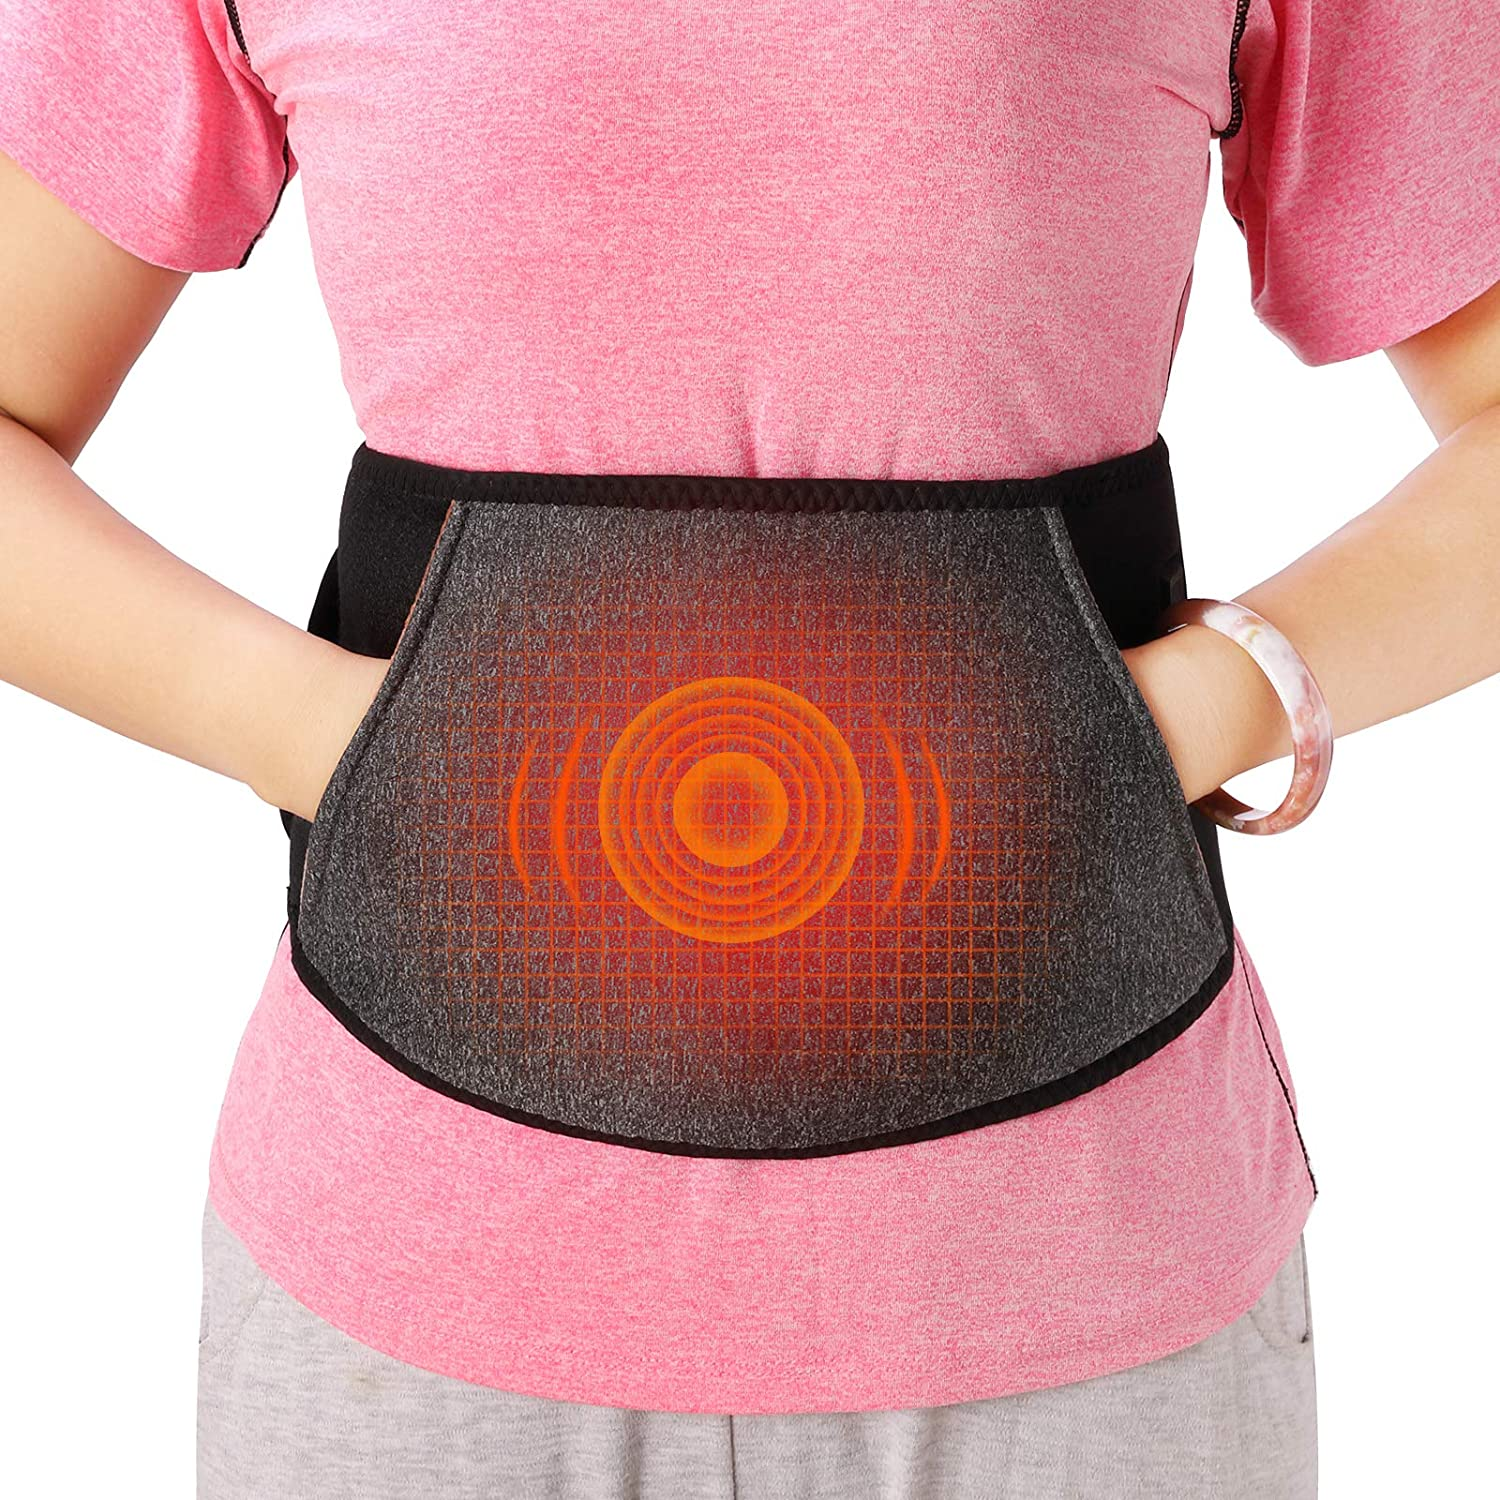 Relief Abdominal Portable Lower Popular standard Reservation Back Cordless Support F Brace